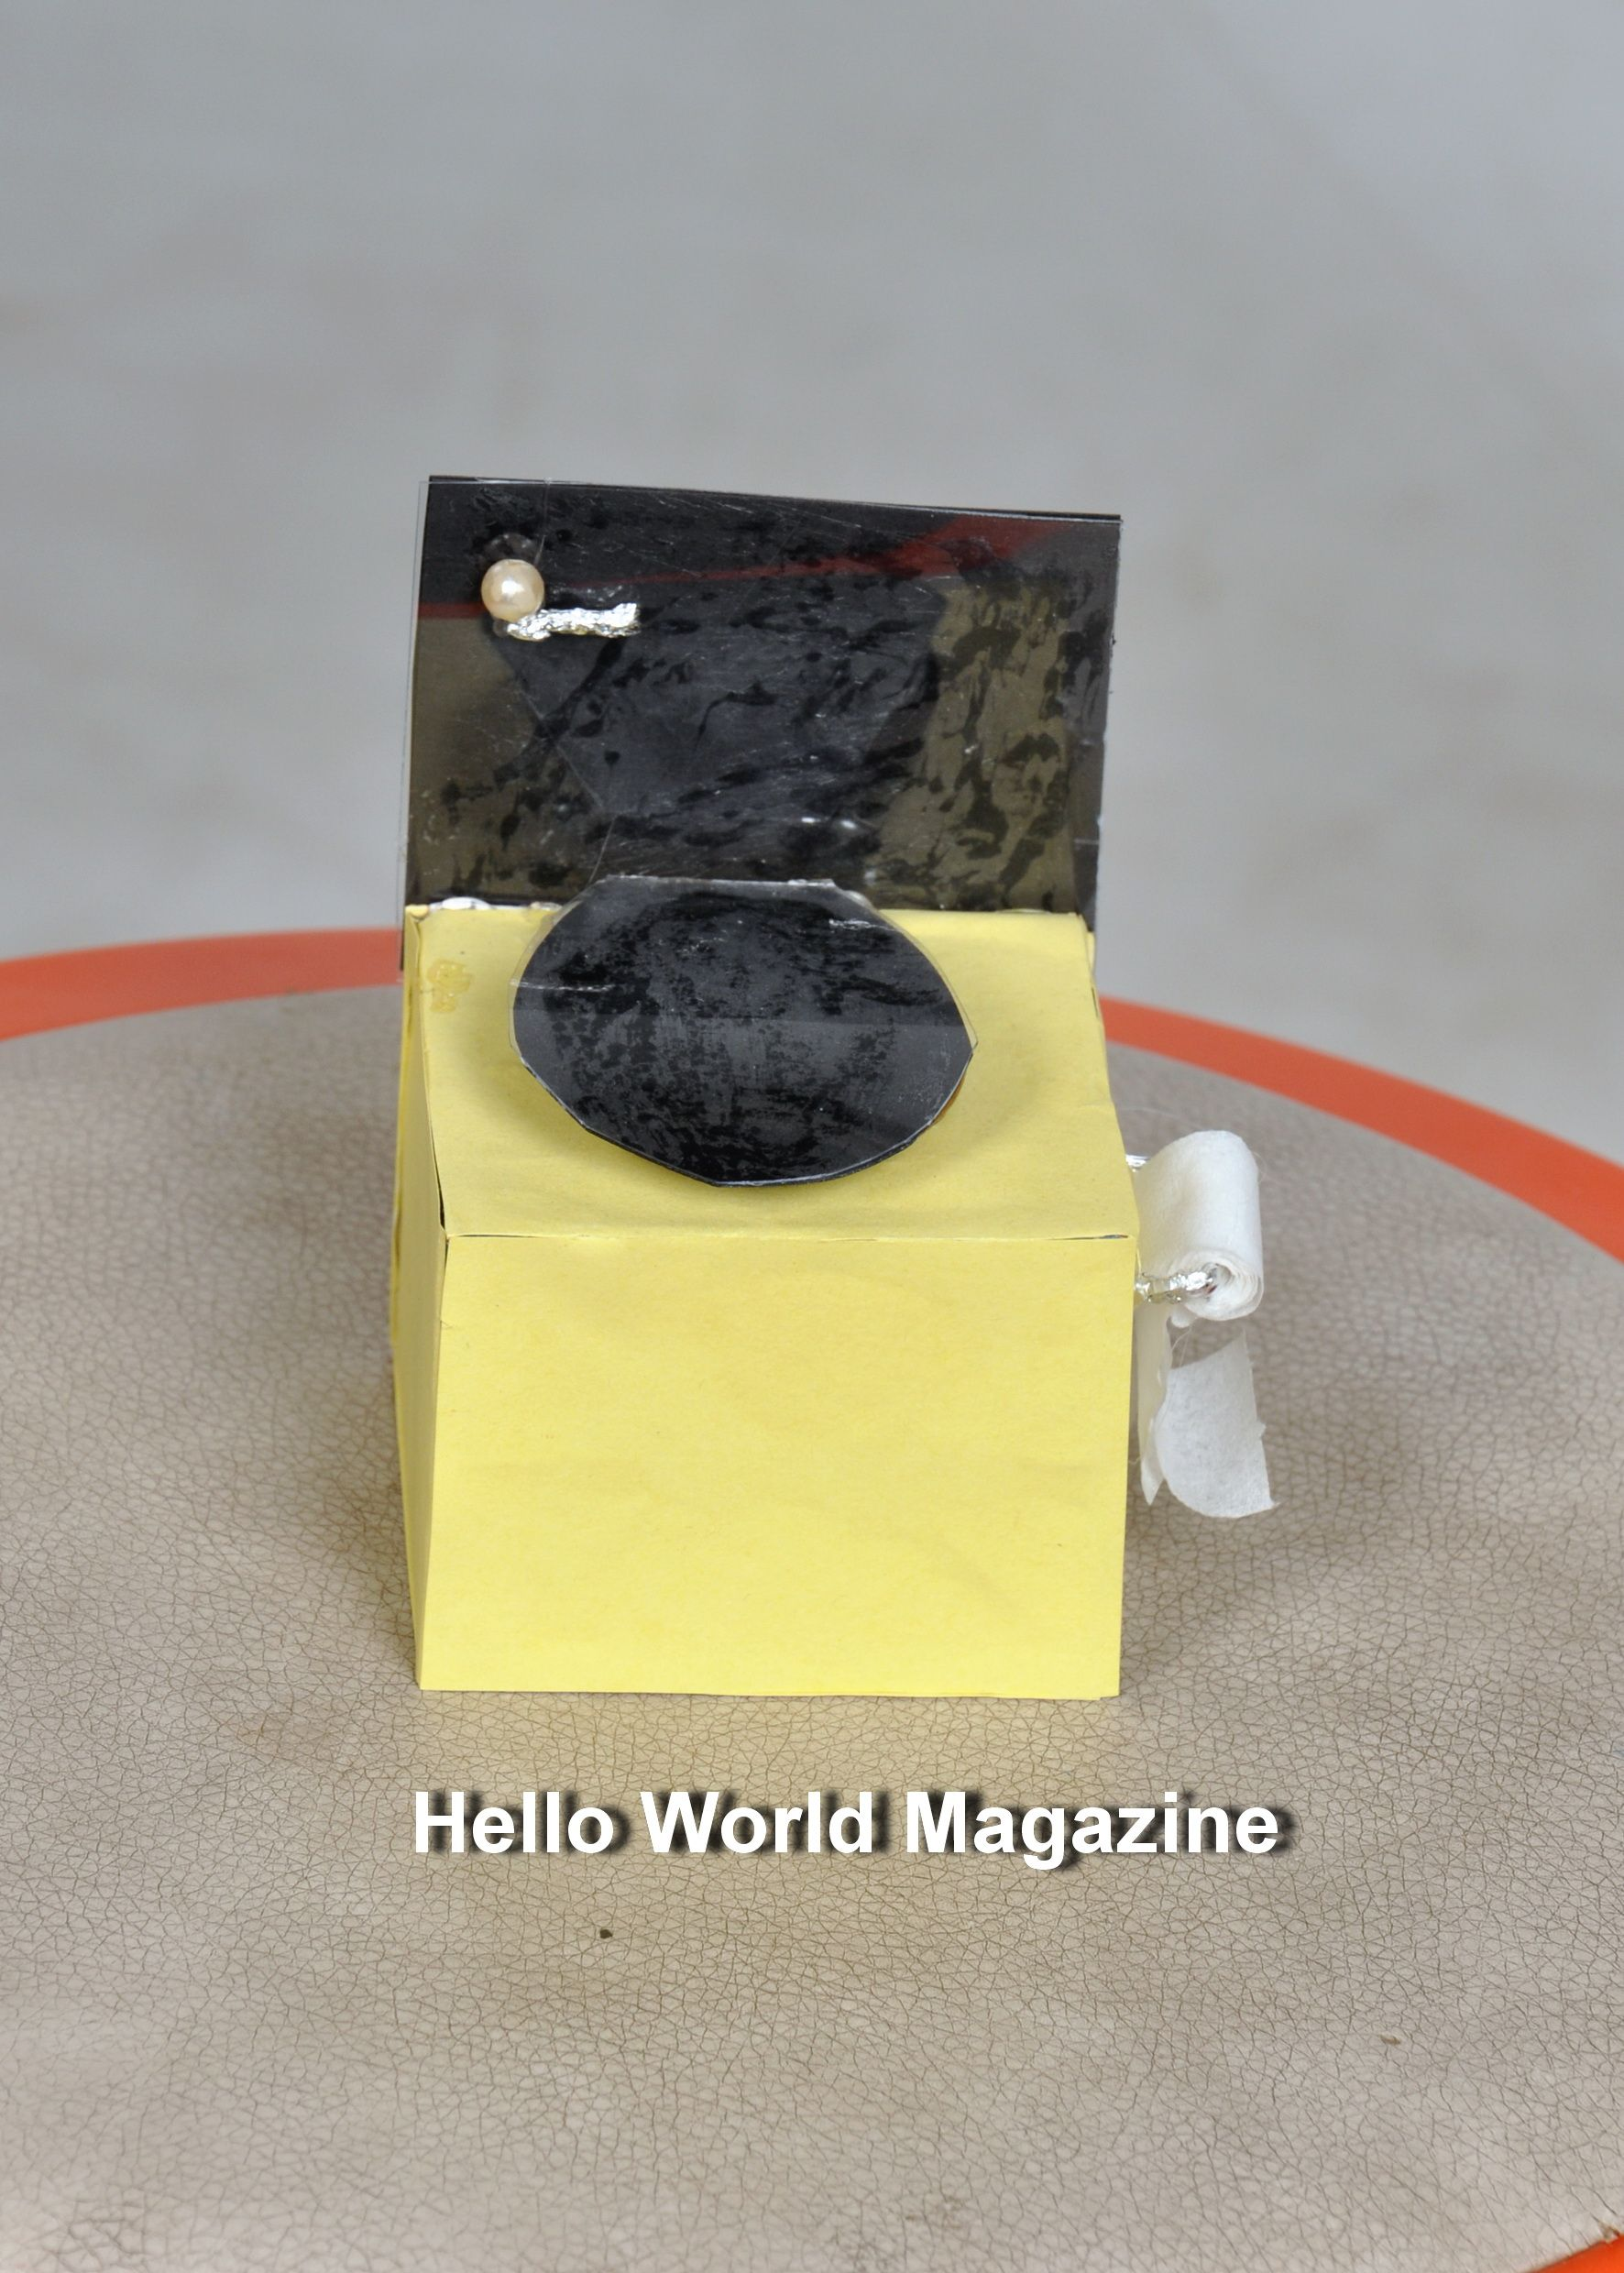 Making A Doll Toilet: When the home is built must be full, even if it was a house of your favorite dolls. Today we decided to teach you how to make a doll toilet by yourself. Enjoy tour time.